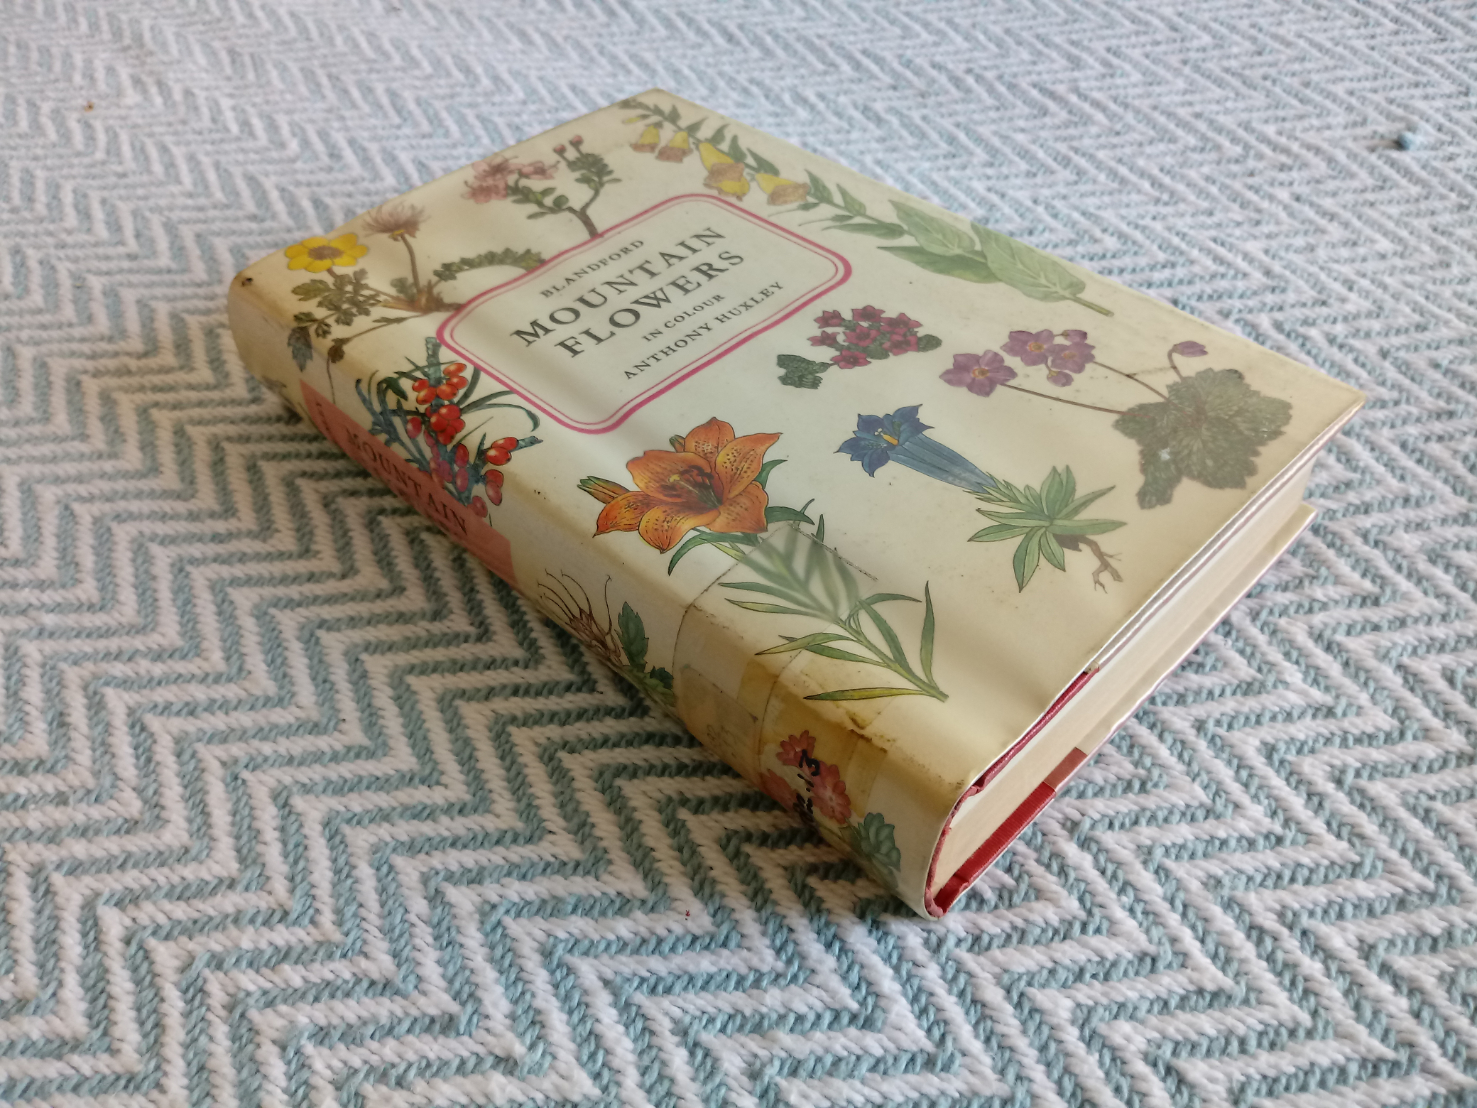 Mountain Flowers In Colour by Anthony Huxley hardback book 428 pages Published 1967 Bradford